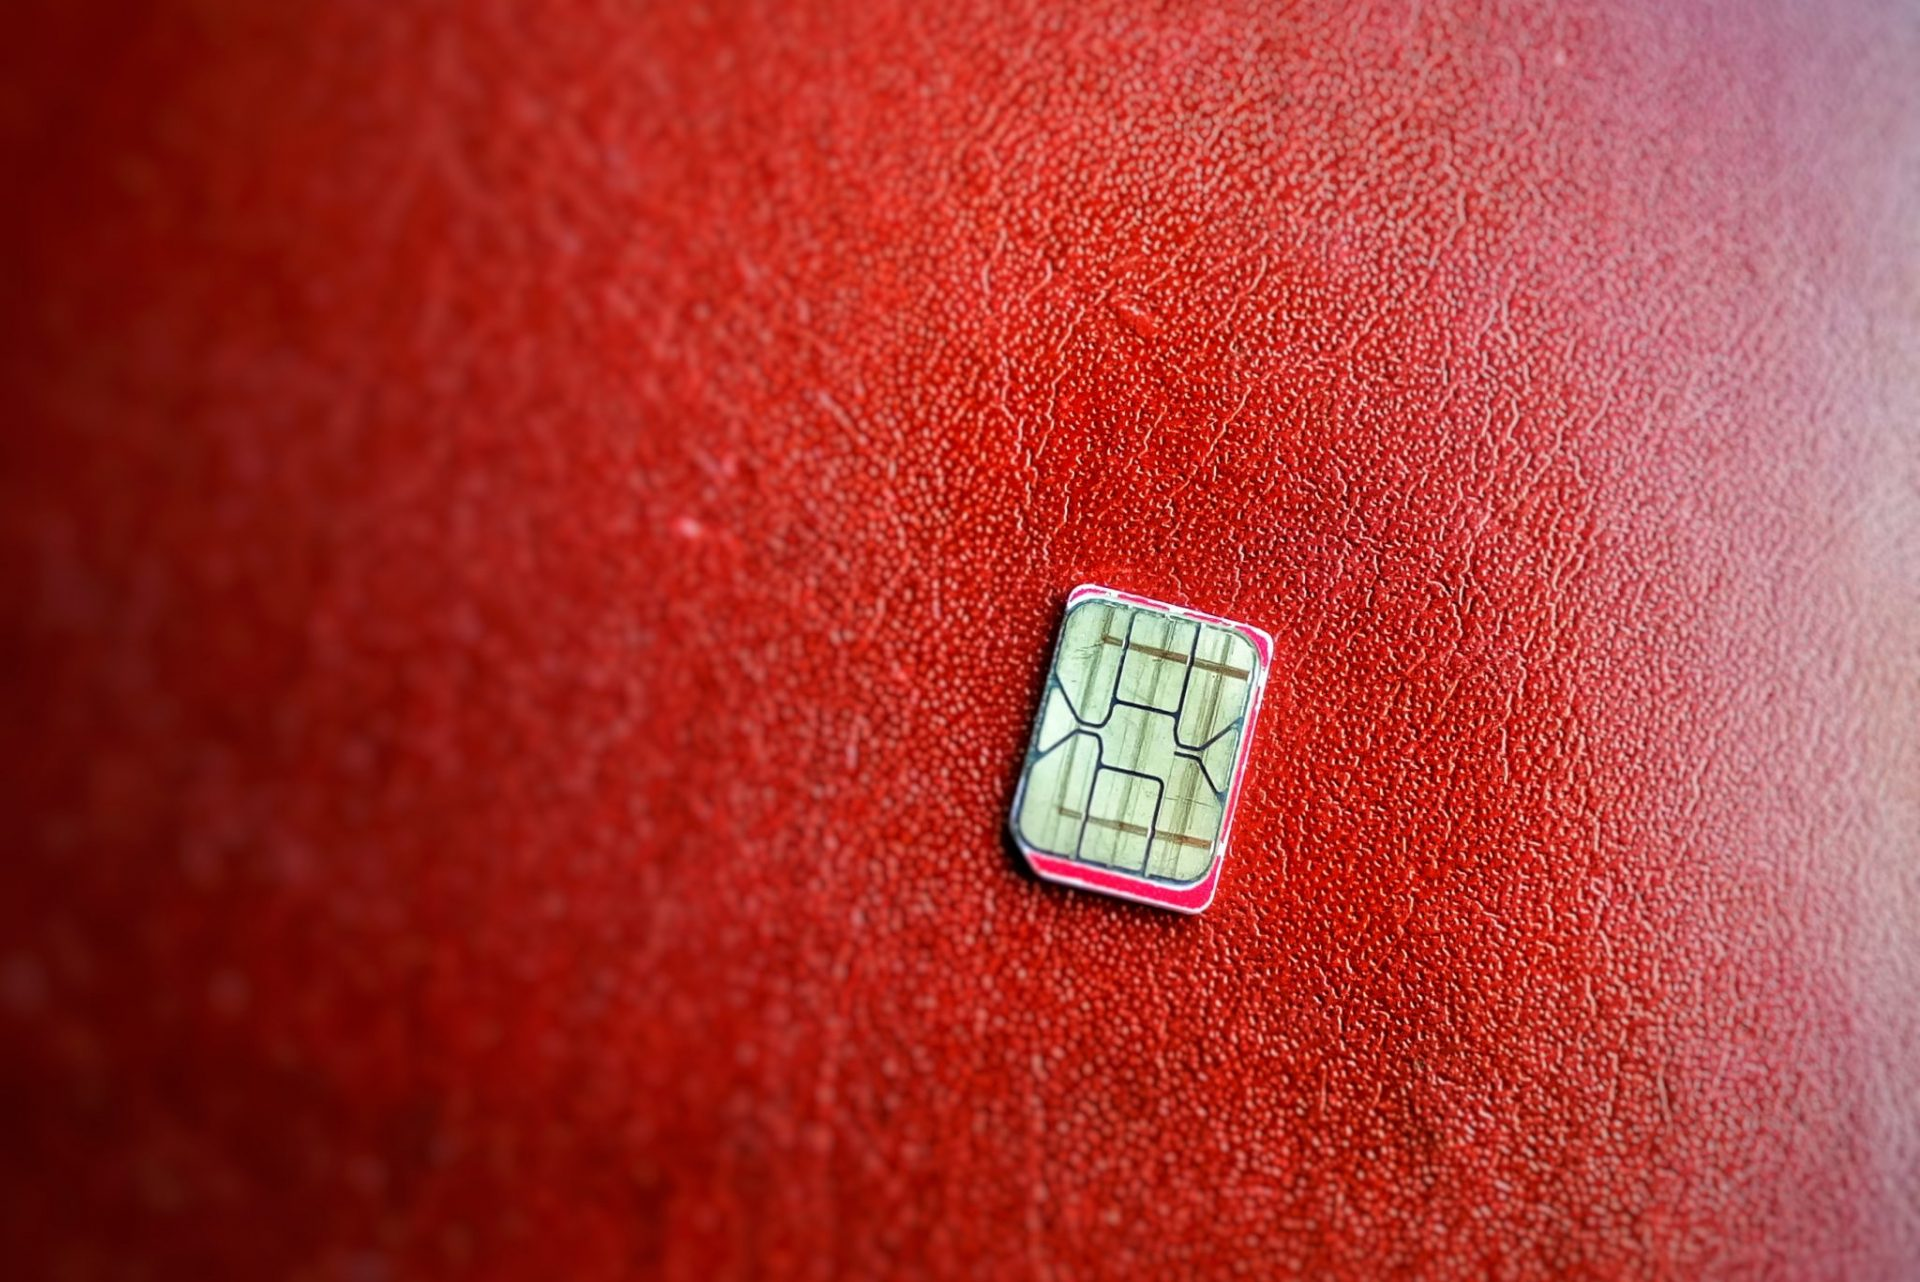 SIM card on red surface